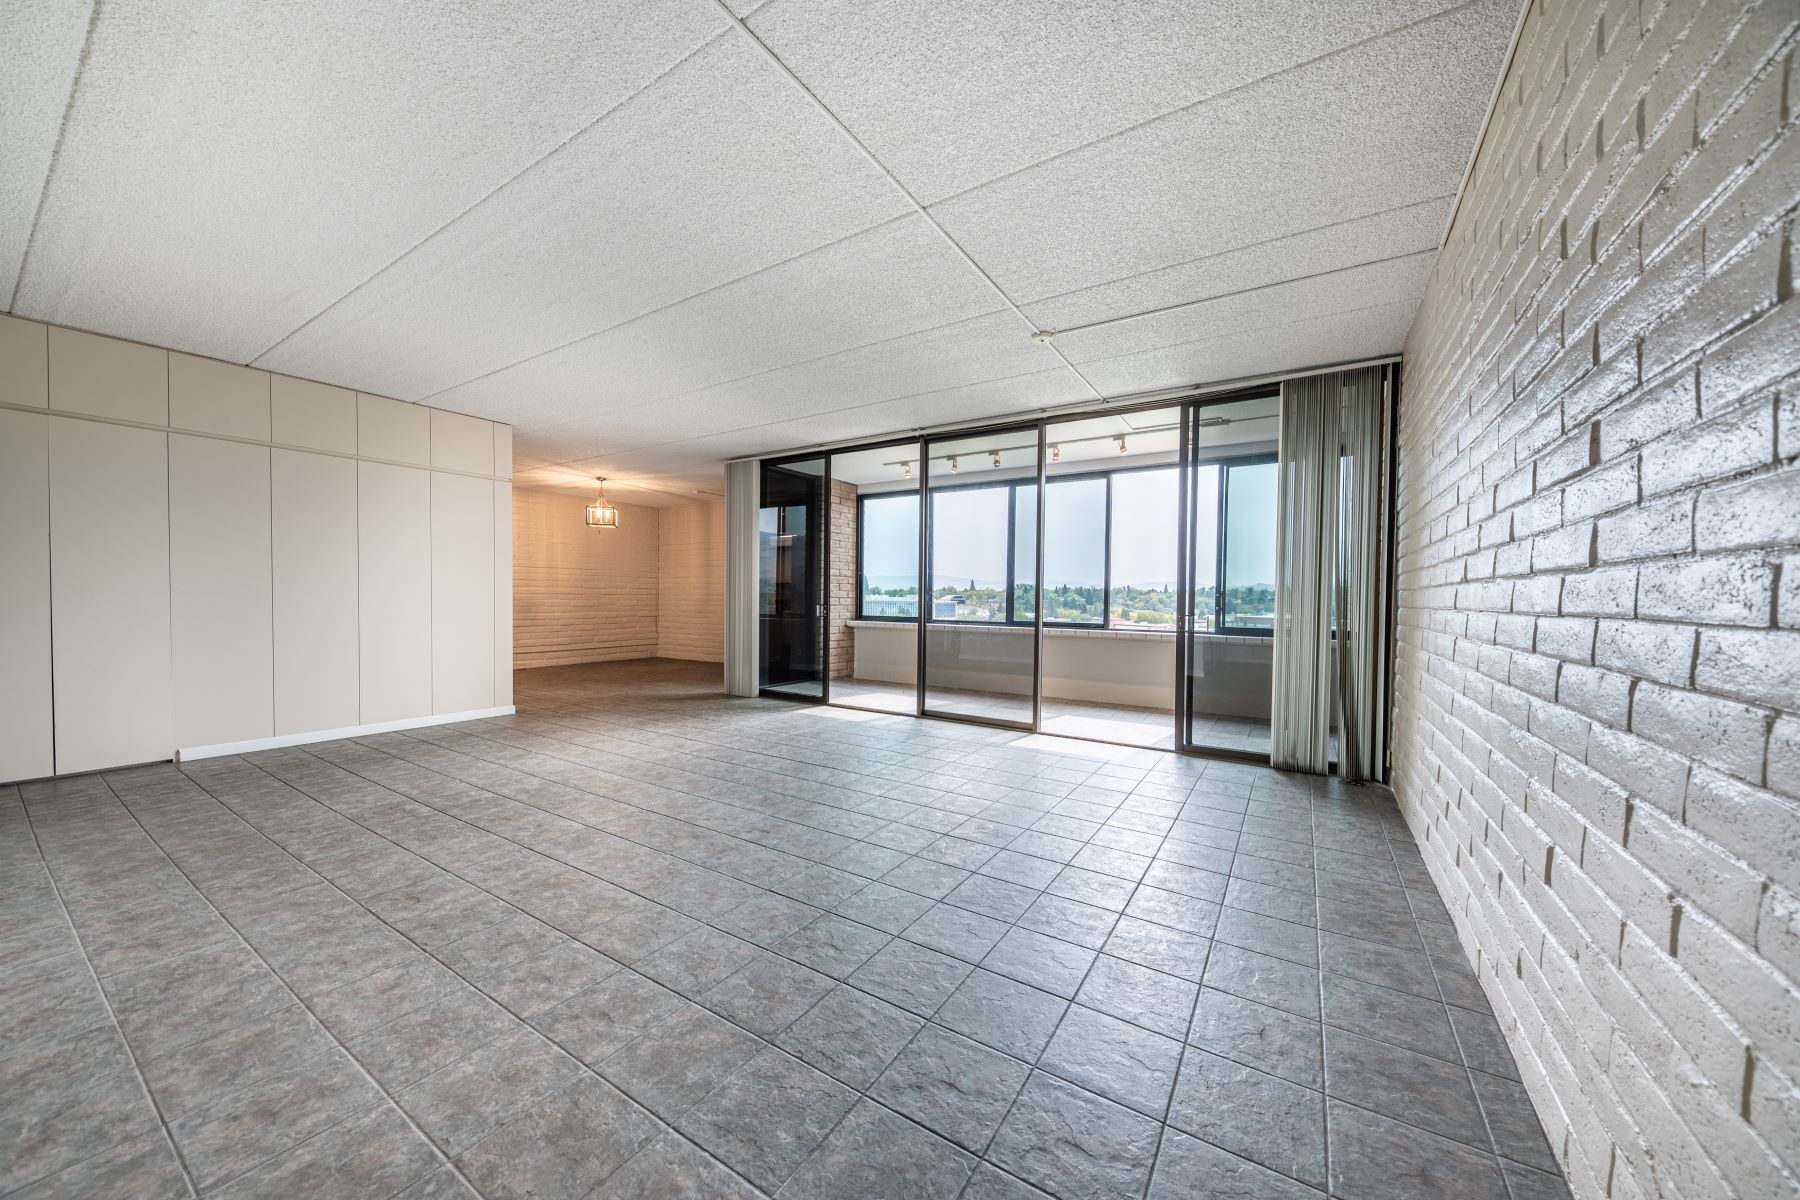 Additional photo for property listing at High Rise Condo with Views 1200 Riverside Drive #1295 Reno, Nevada 89503 United States